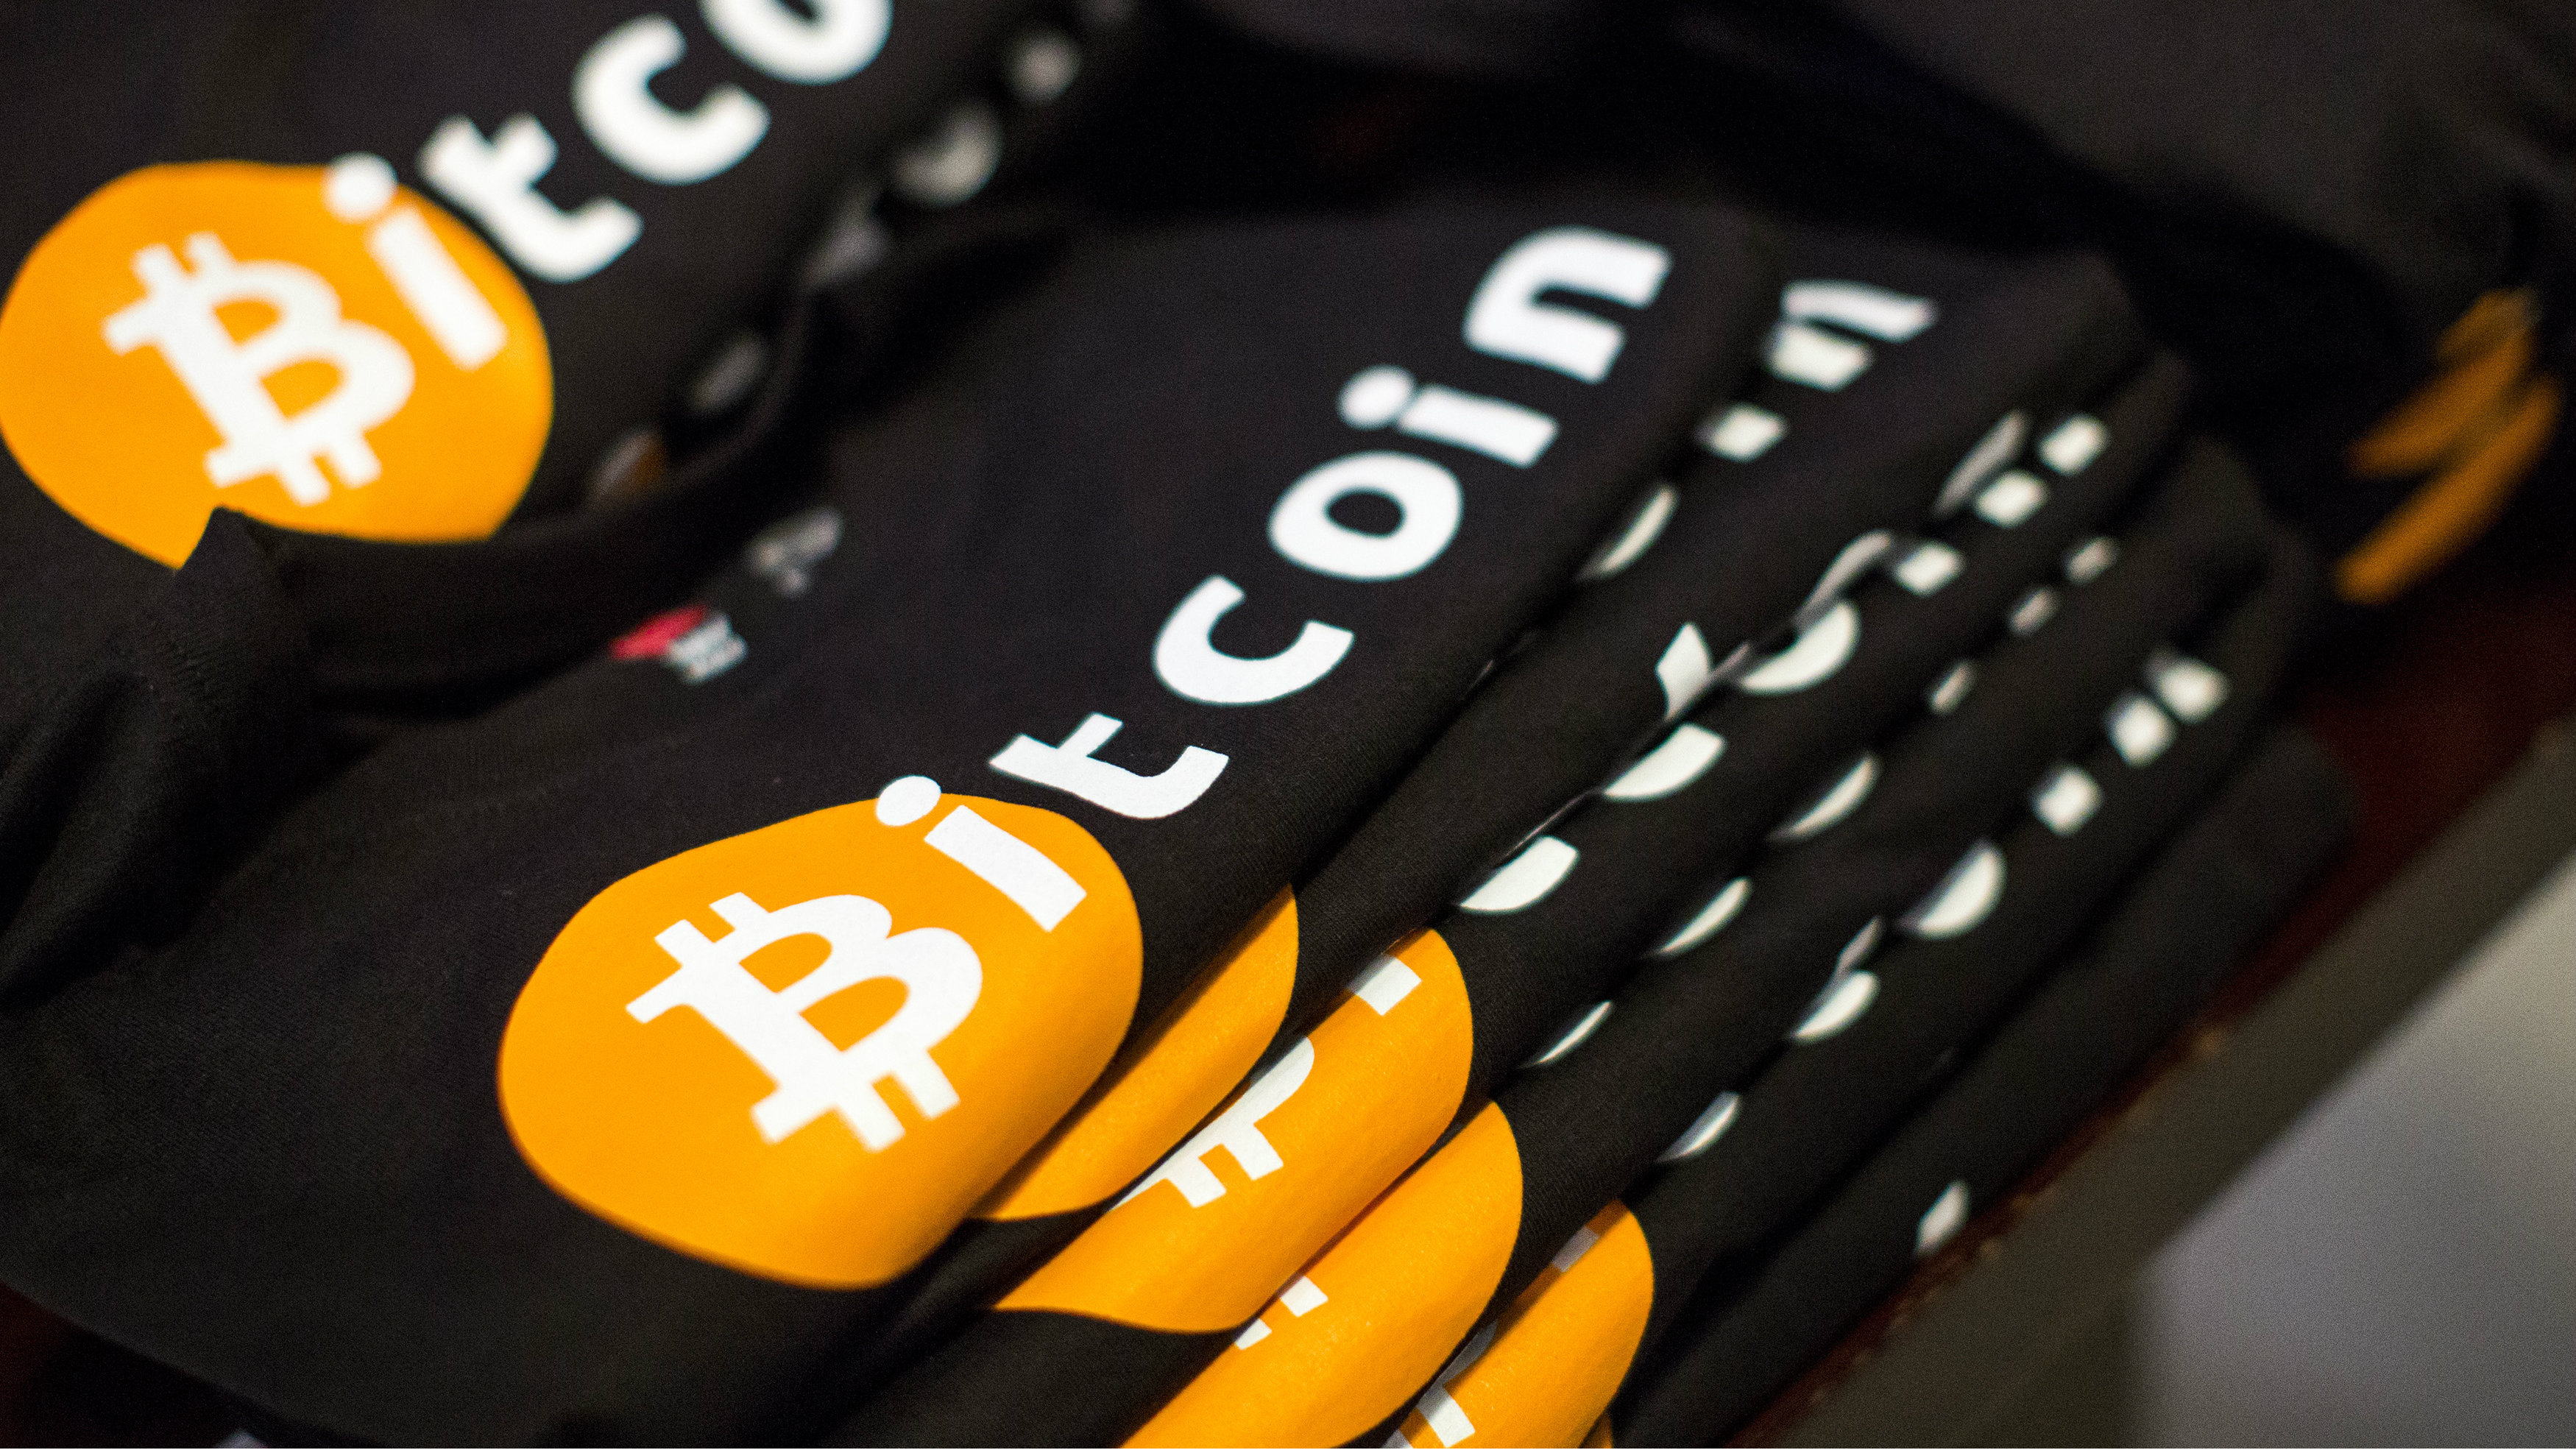 Shirts are displayed, for sale, during the Satoshi Square at the Bitcoin Center NYC in New York May 22, 2014. Satoshi Square is the World's Largest Direct Sellers-to-Buyers Bitcoin trading pit at the Bitcoin Center NYC, located a block from the New York Stock Exchange in New York's financial district.